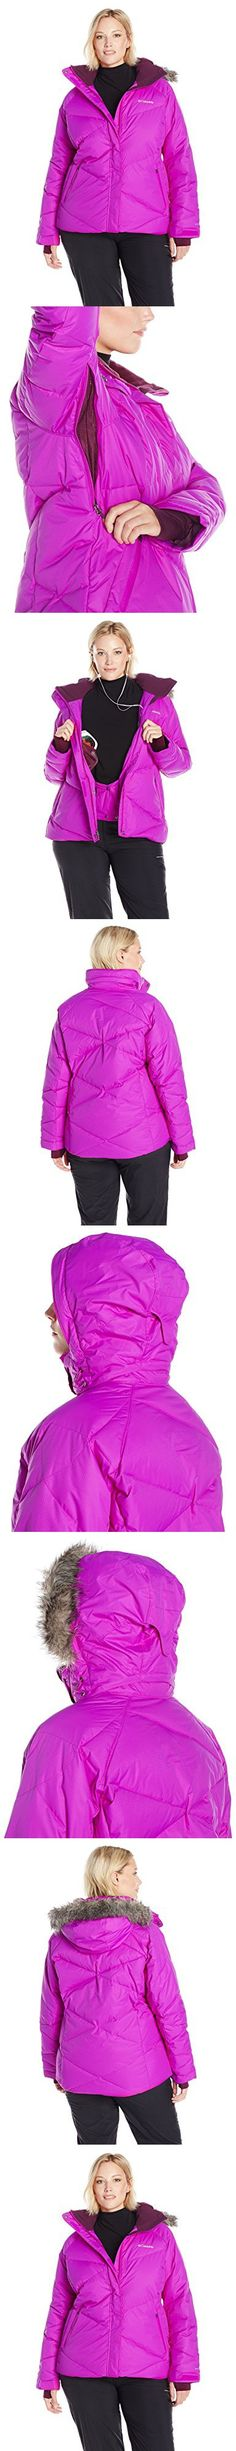 Columbia Sportswear Women's Plus Lay D Down Jacket, Bright Plum Dobby, 1X